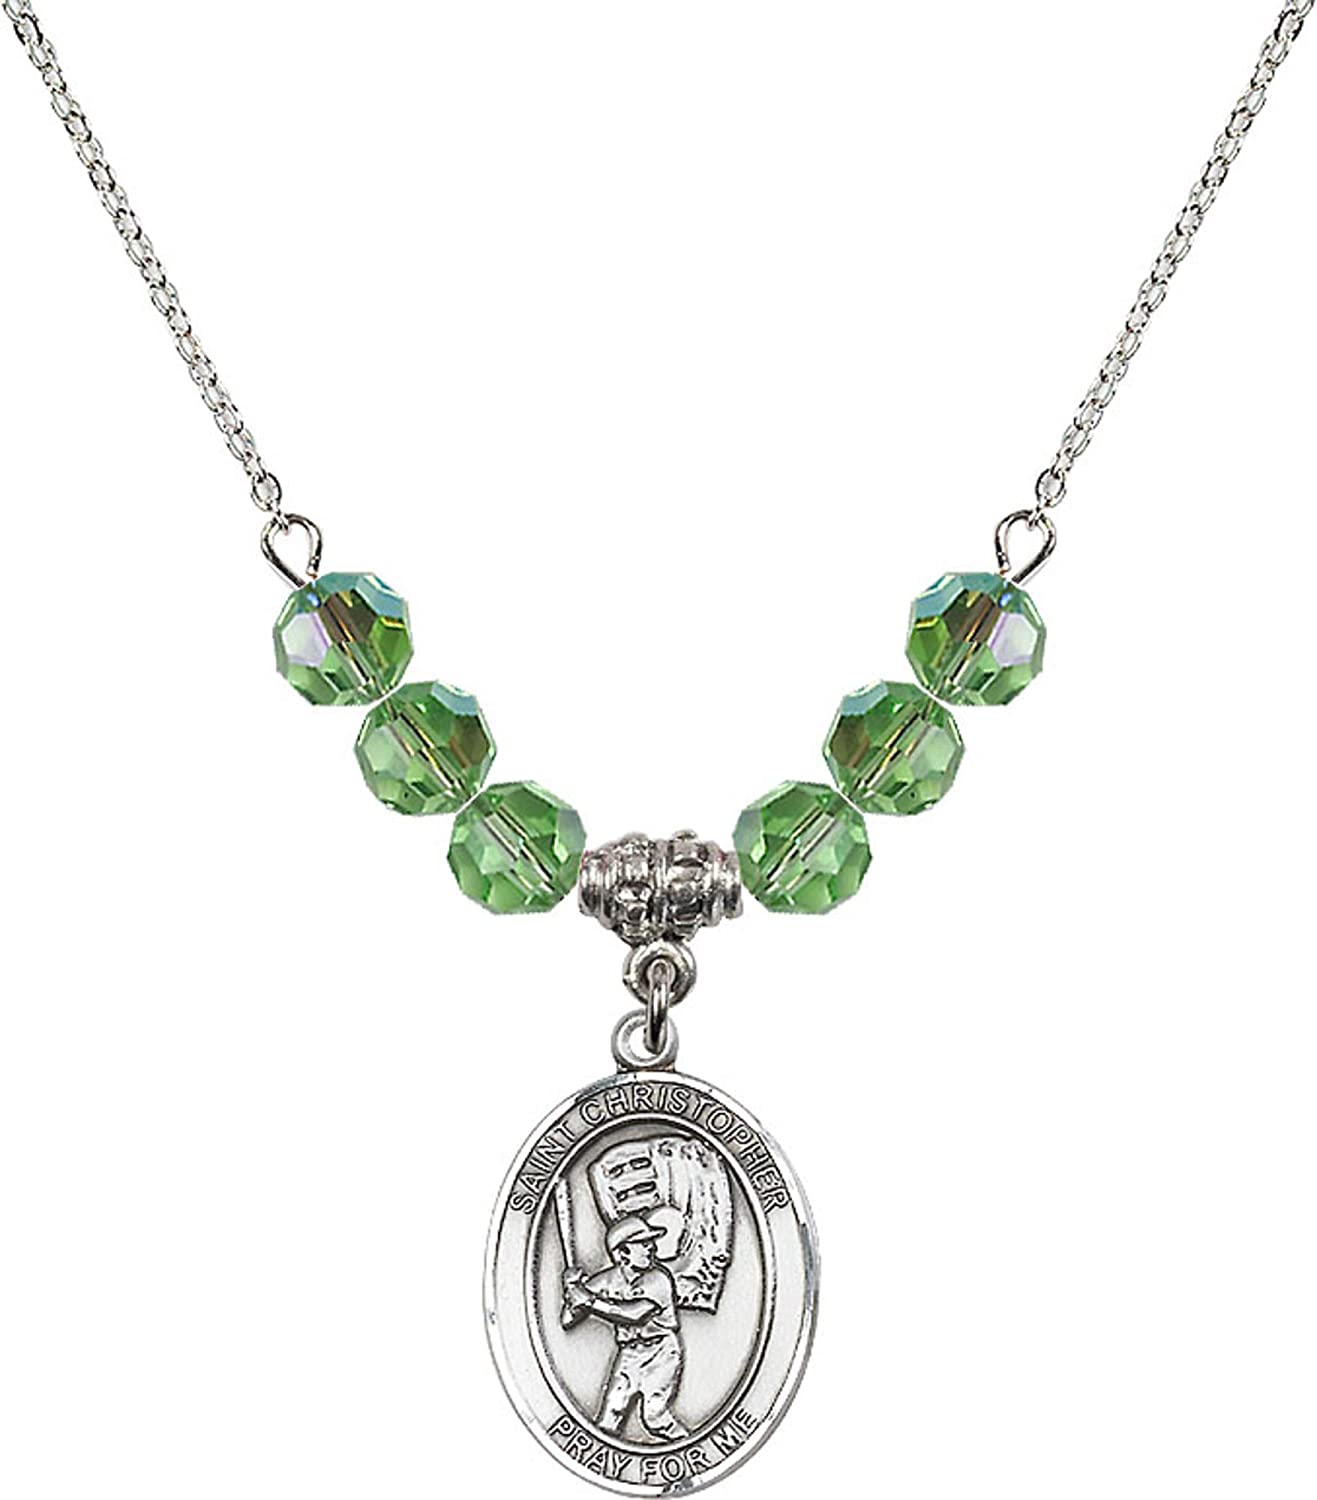 Bonyak Jewelry 18 Inch Rhodium Plated Necklace w// 6mm Green August Birth Month Stone Beads and Saint Christopher//Baseball Charm